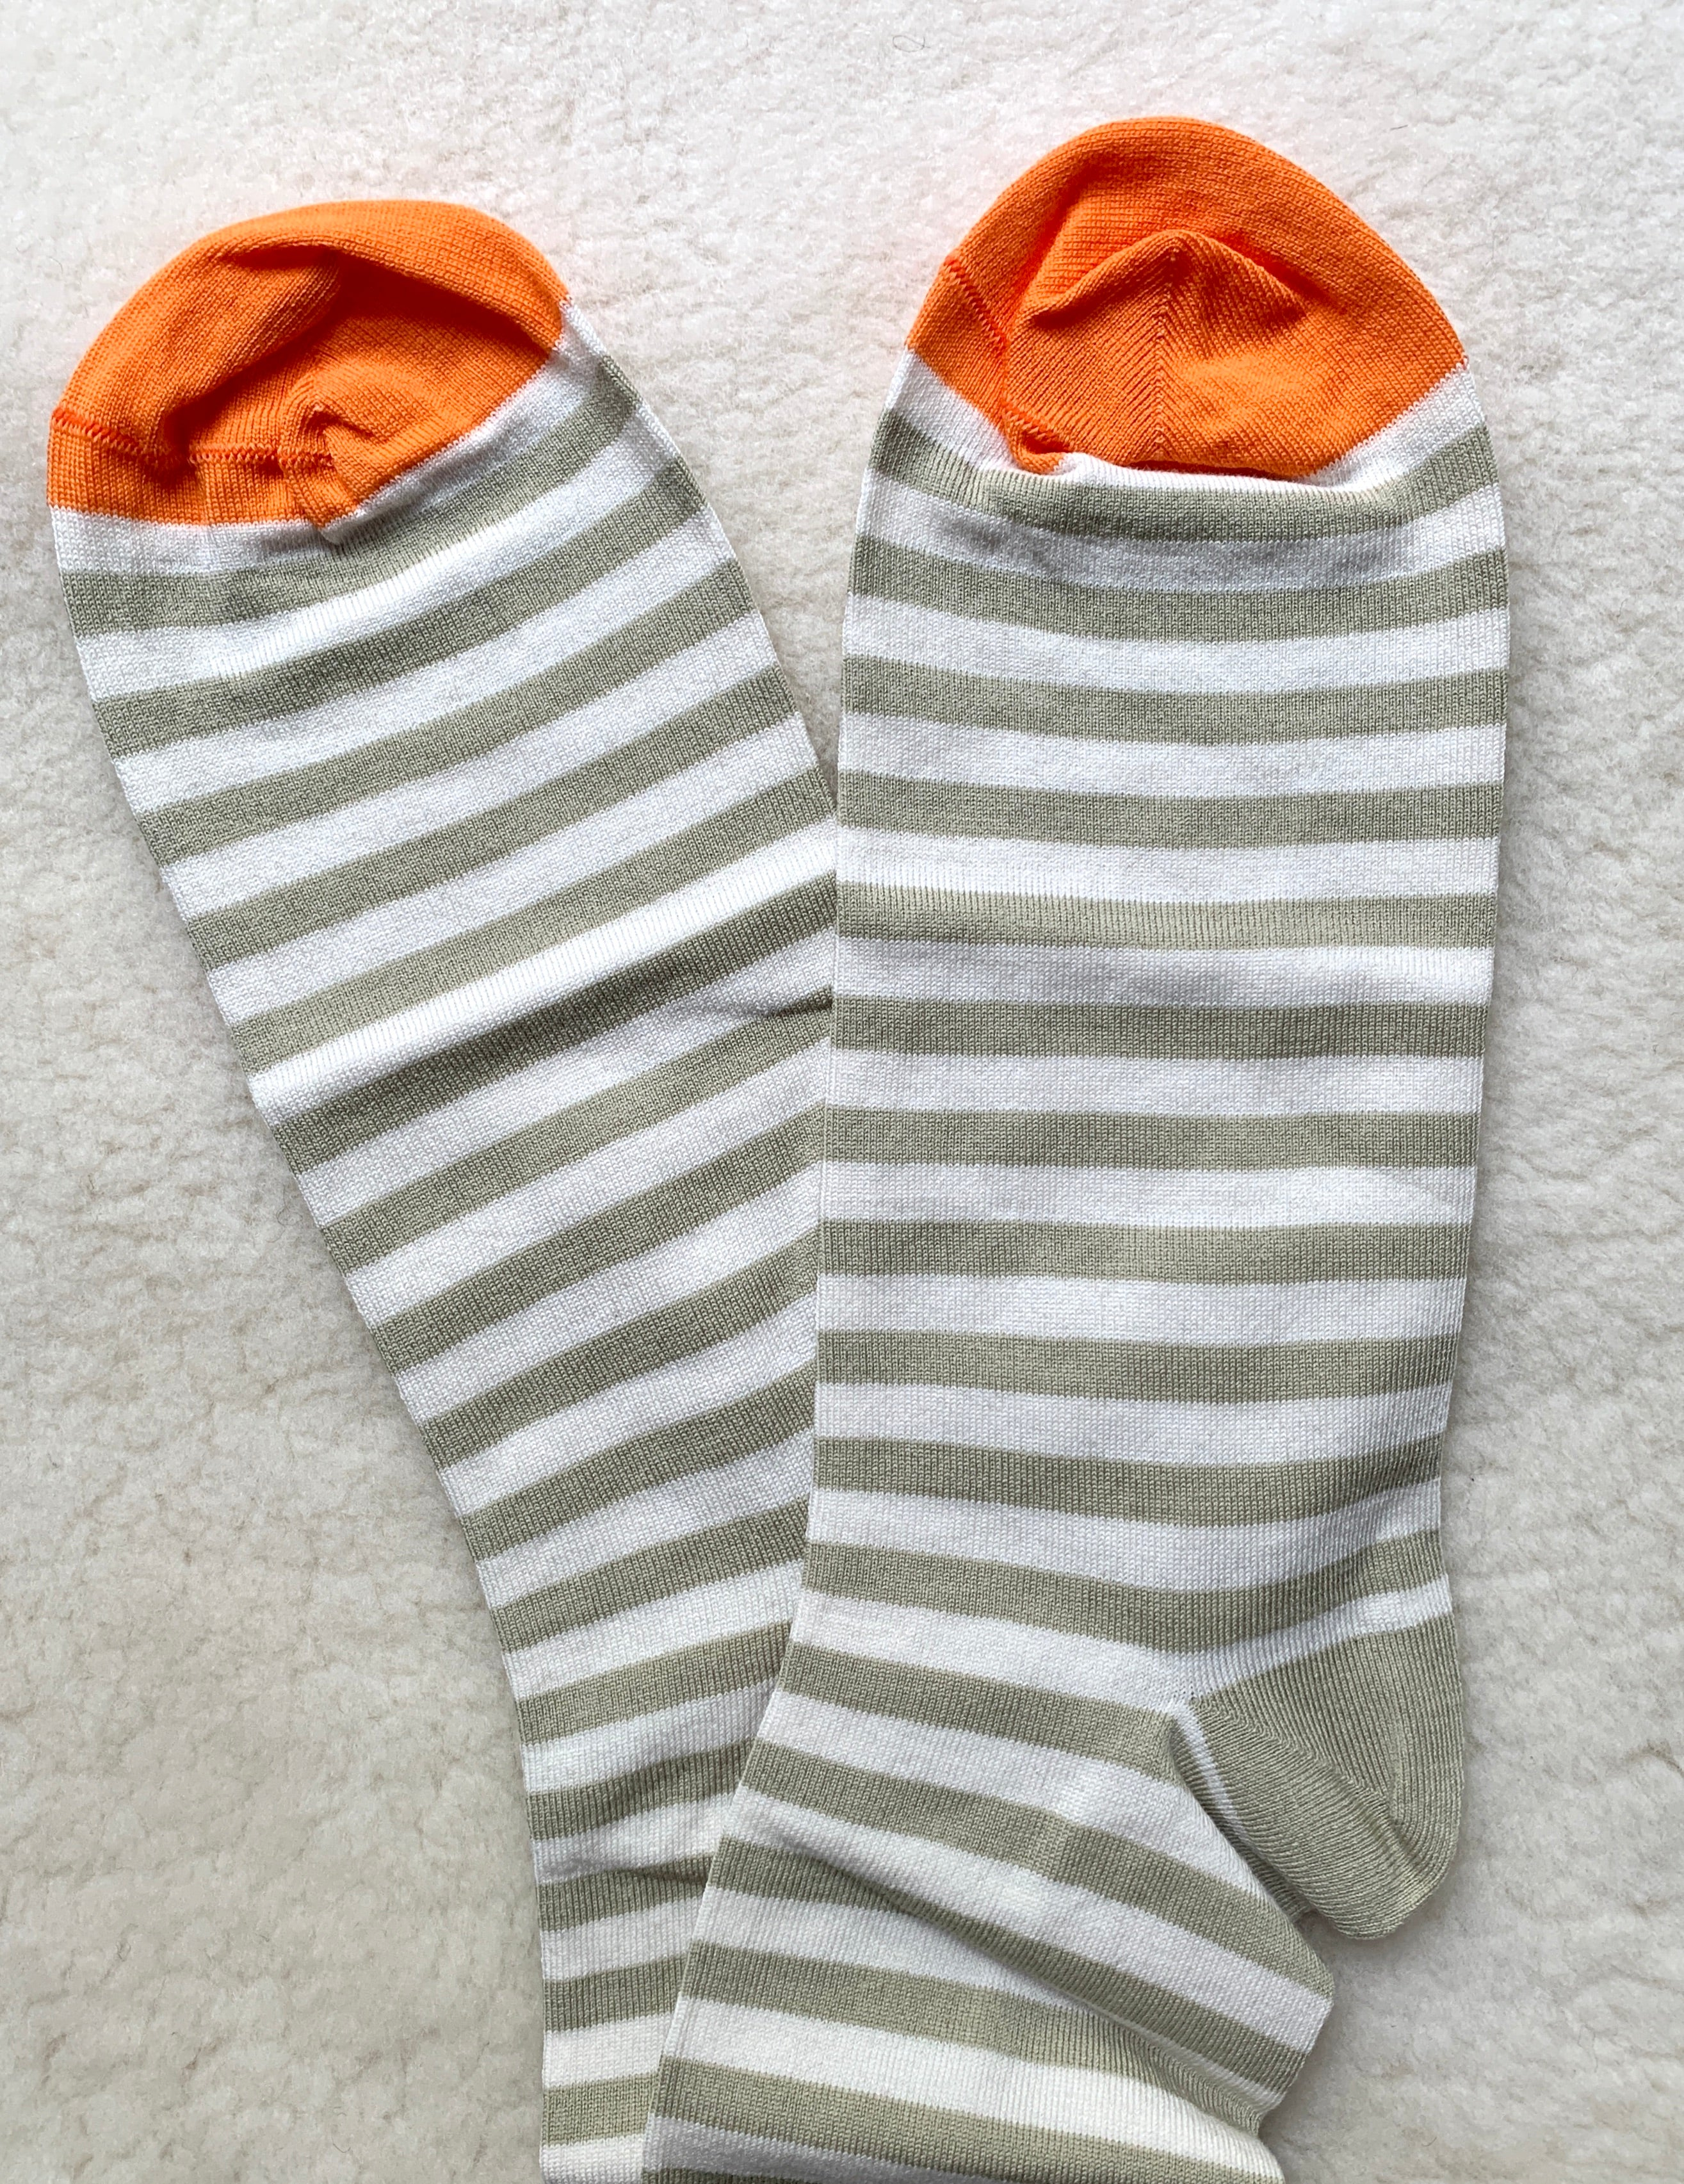 Bonne Maison Socks: Men's: Pale Olive Stripe